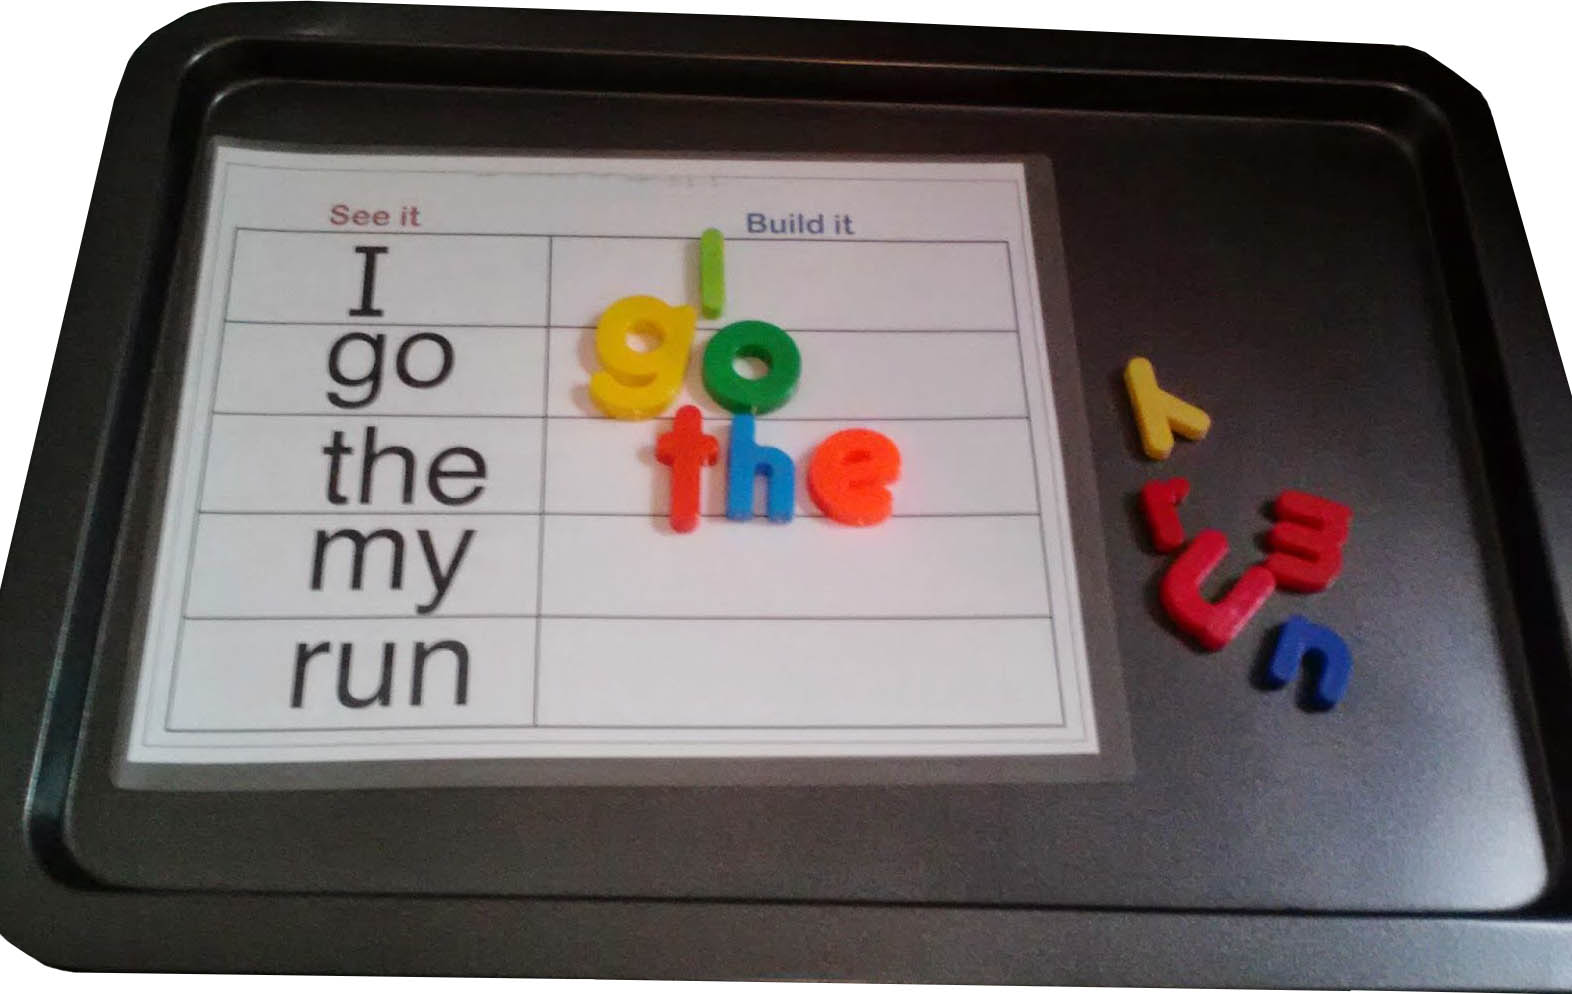 magnetic letter sight words